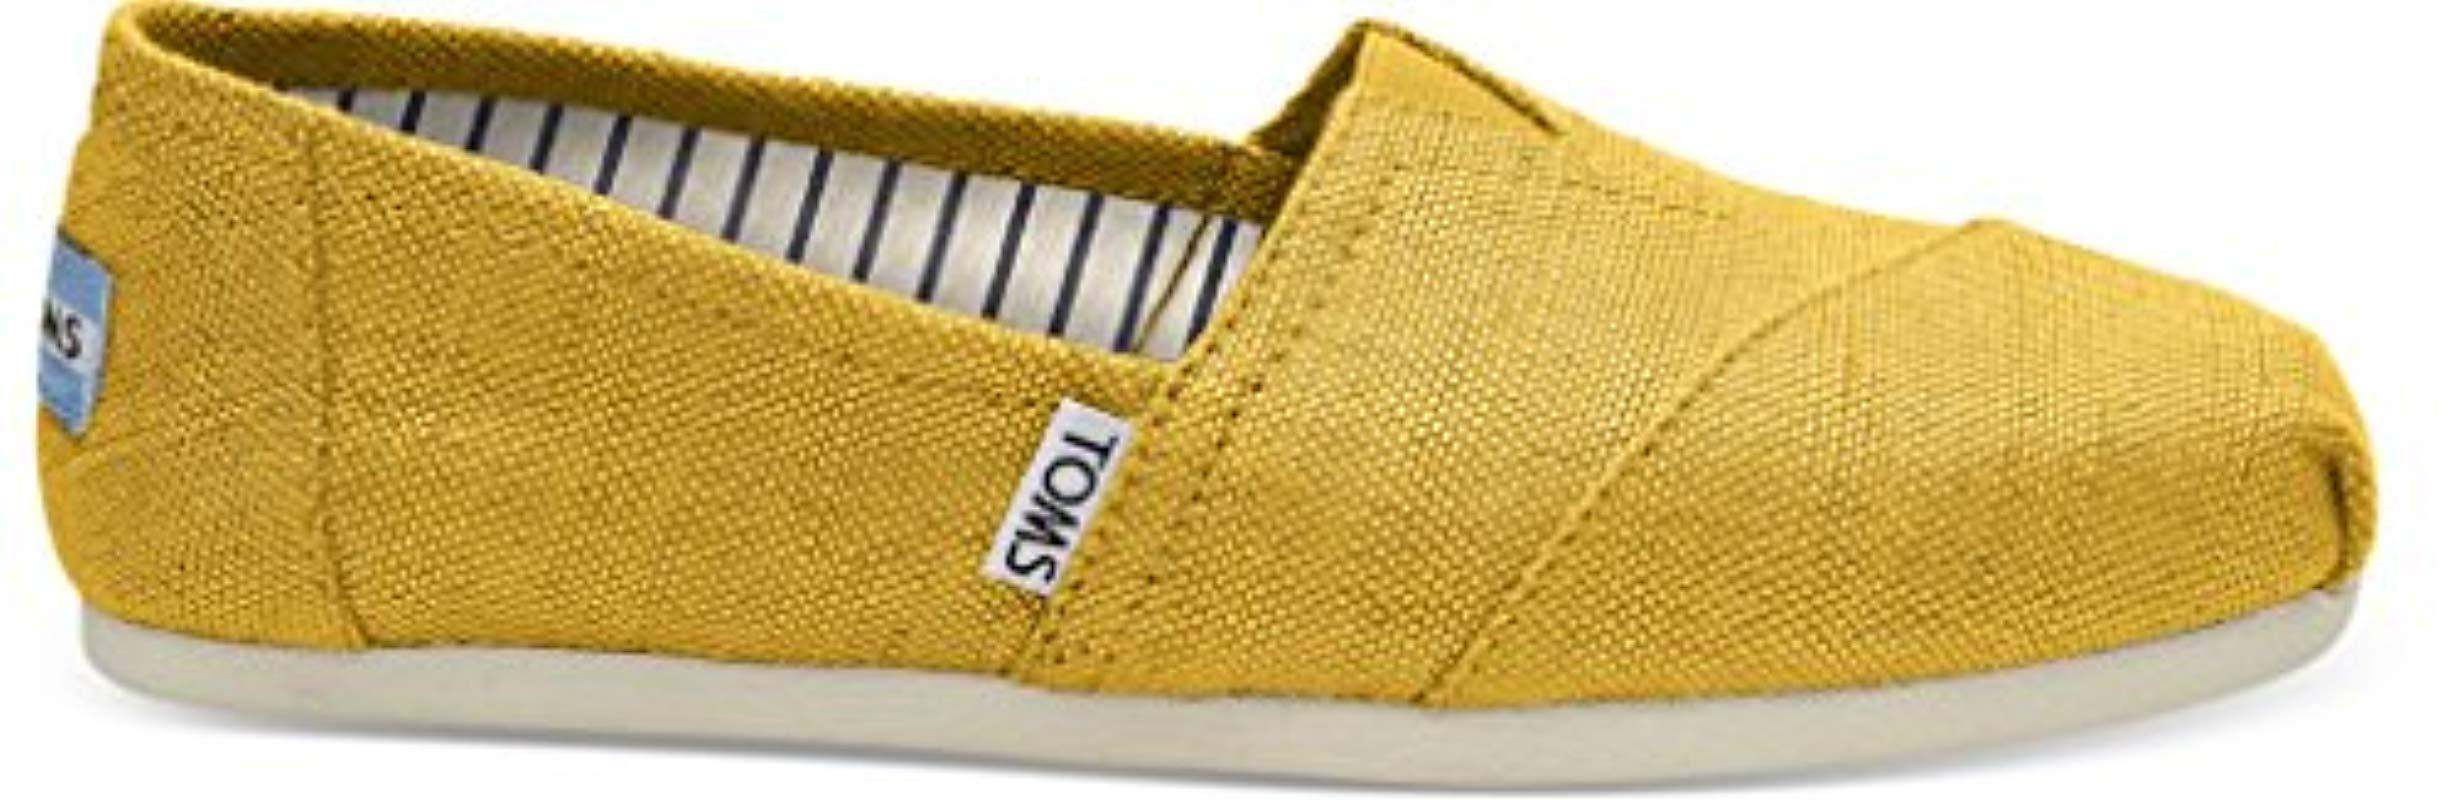 cb7752d37d7b9 Lyst - TOMS Classic Canvas Slip-on Shoe in Yellow